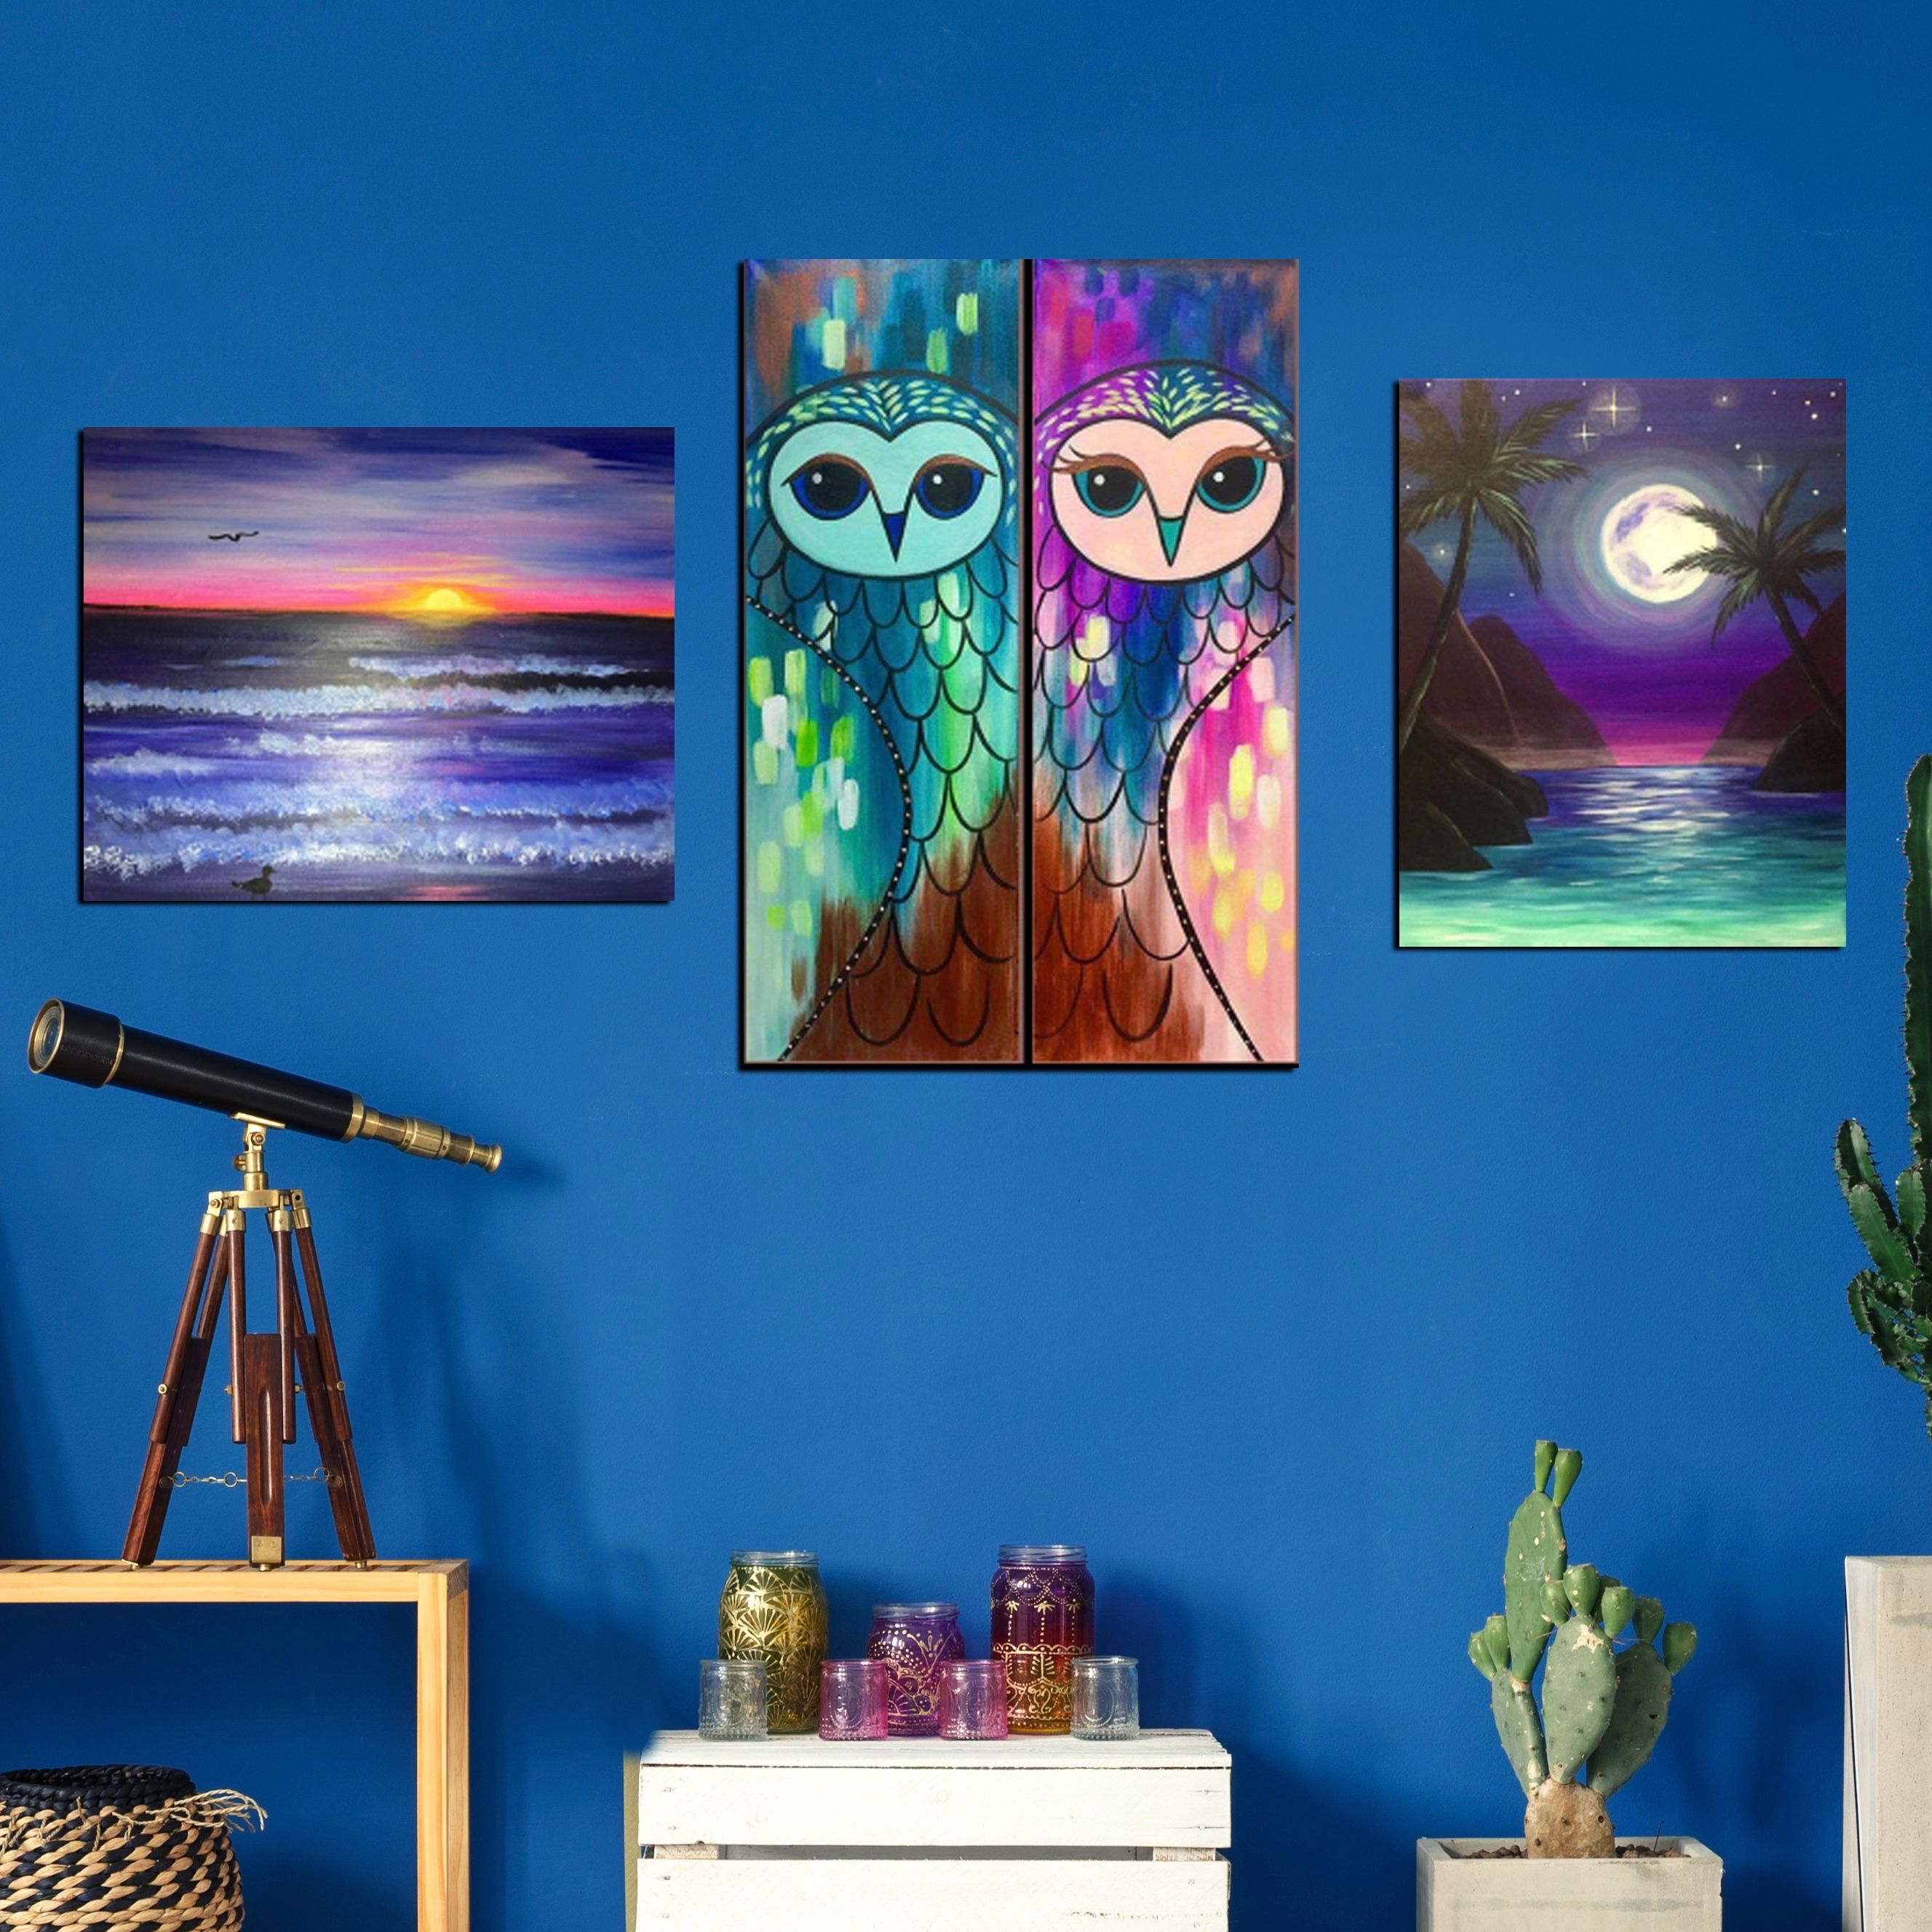 Paint and sip with friends and family while creating decor